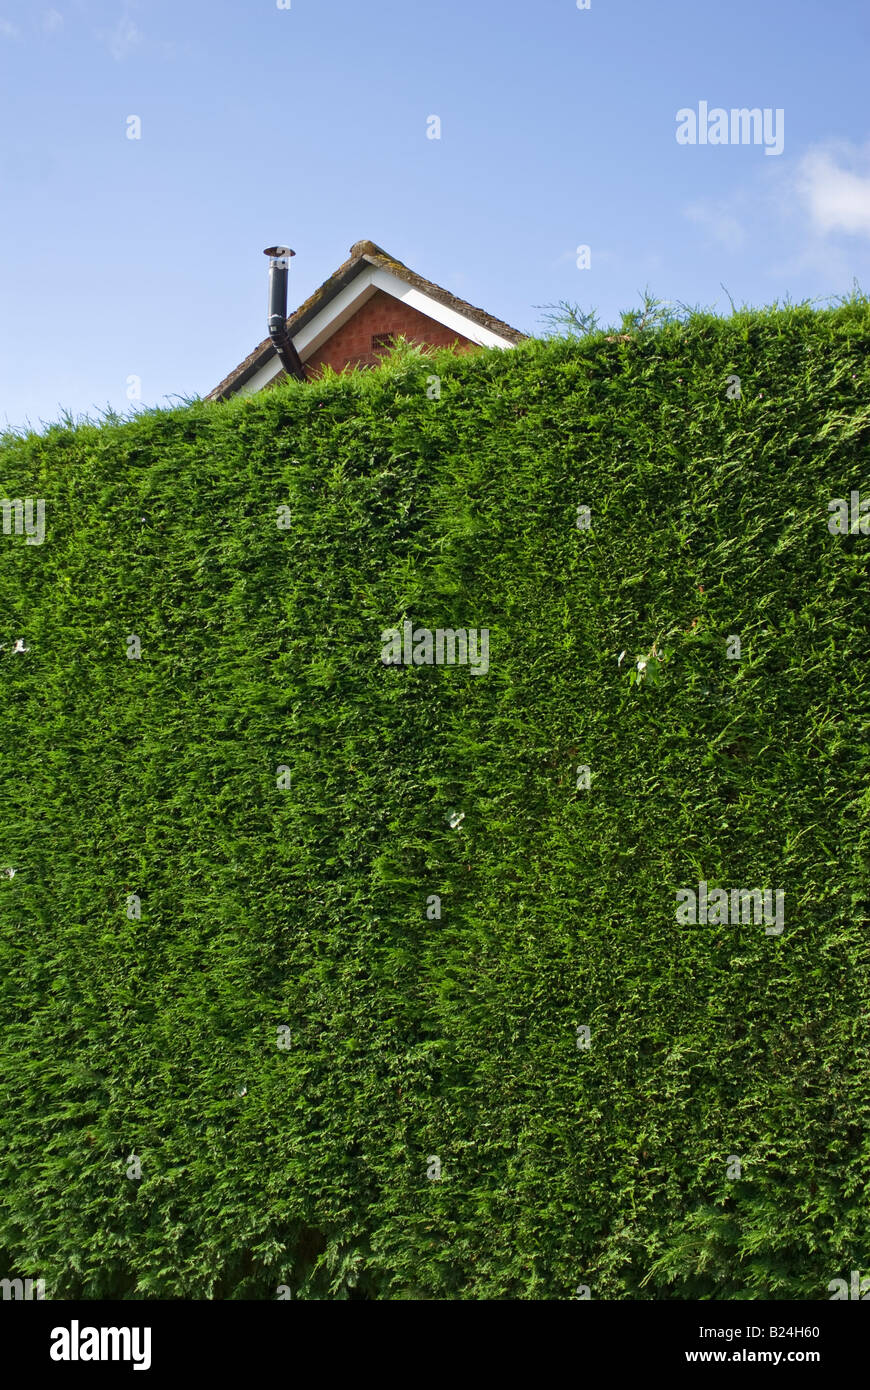 Tall Leylandii cypress hedge grown to obscure new development housing on adjacent land in UK - Stock Image